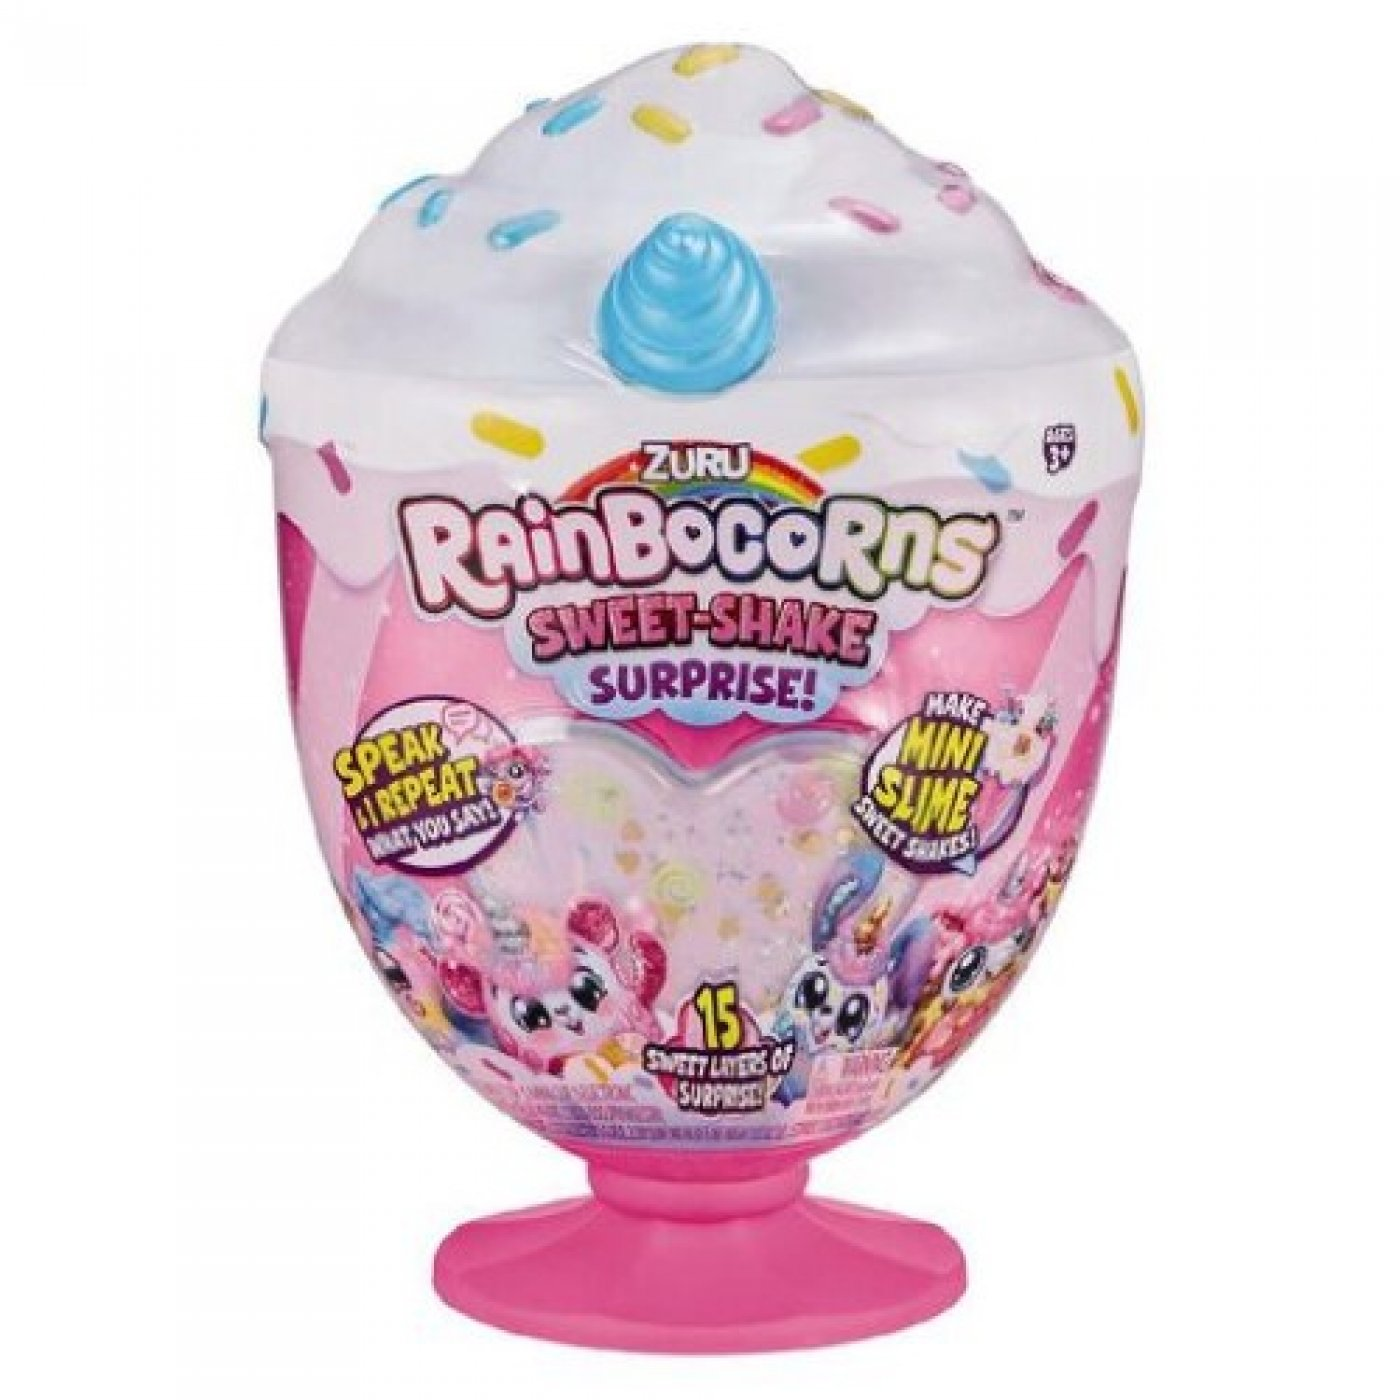 Rainbocorns Sweet Shake Surprise